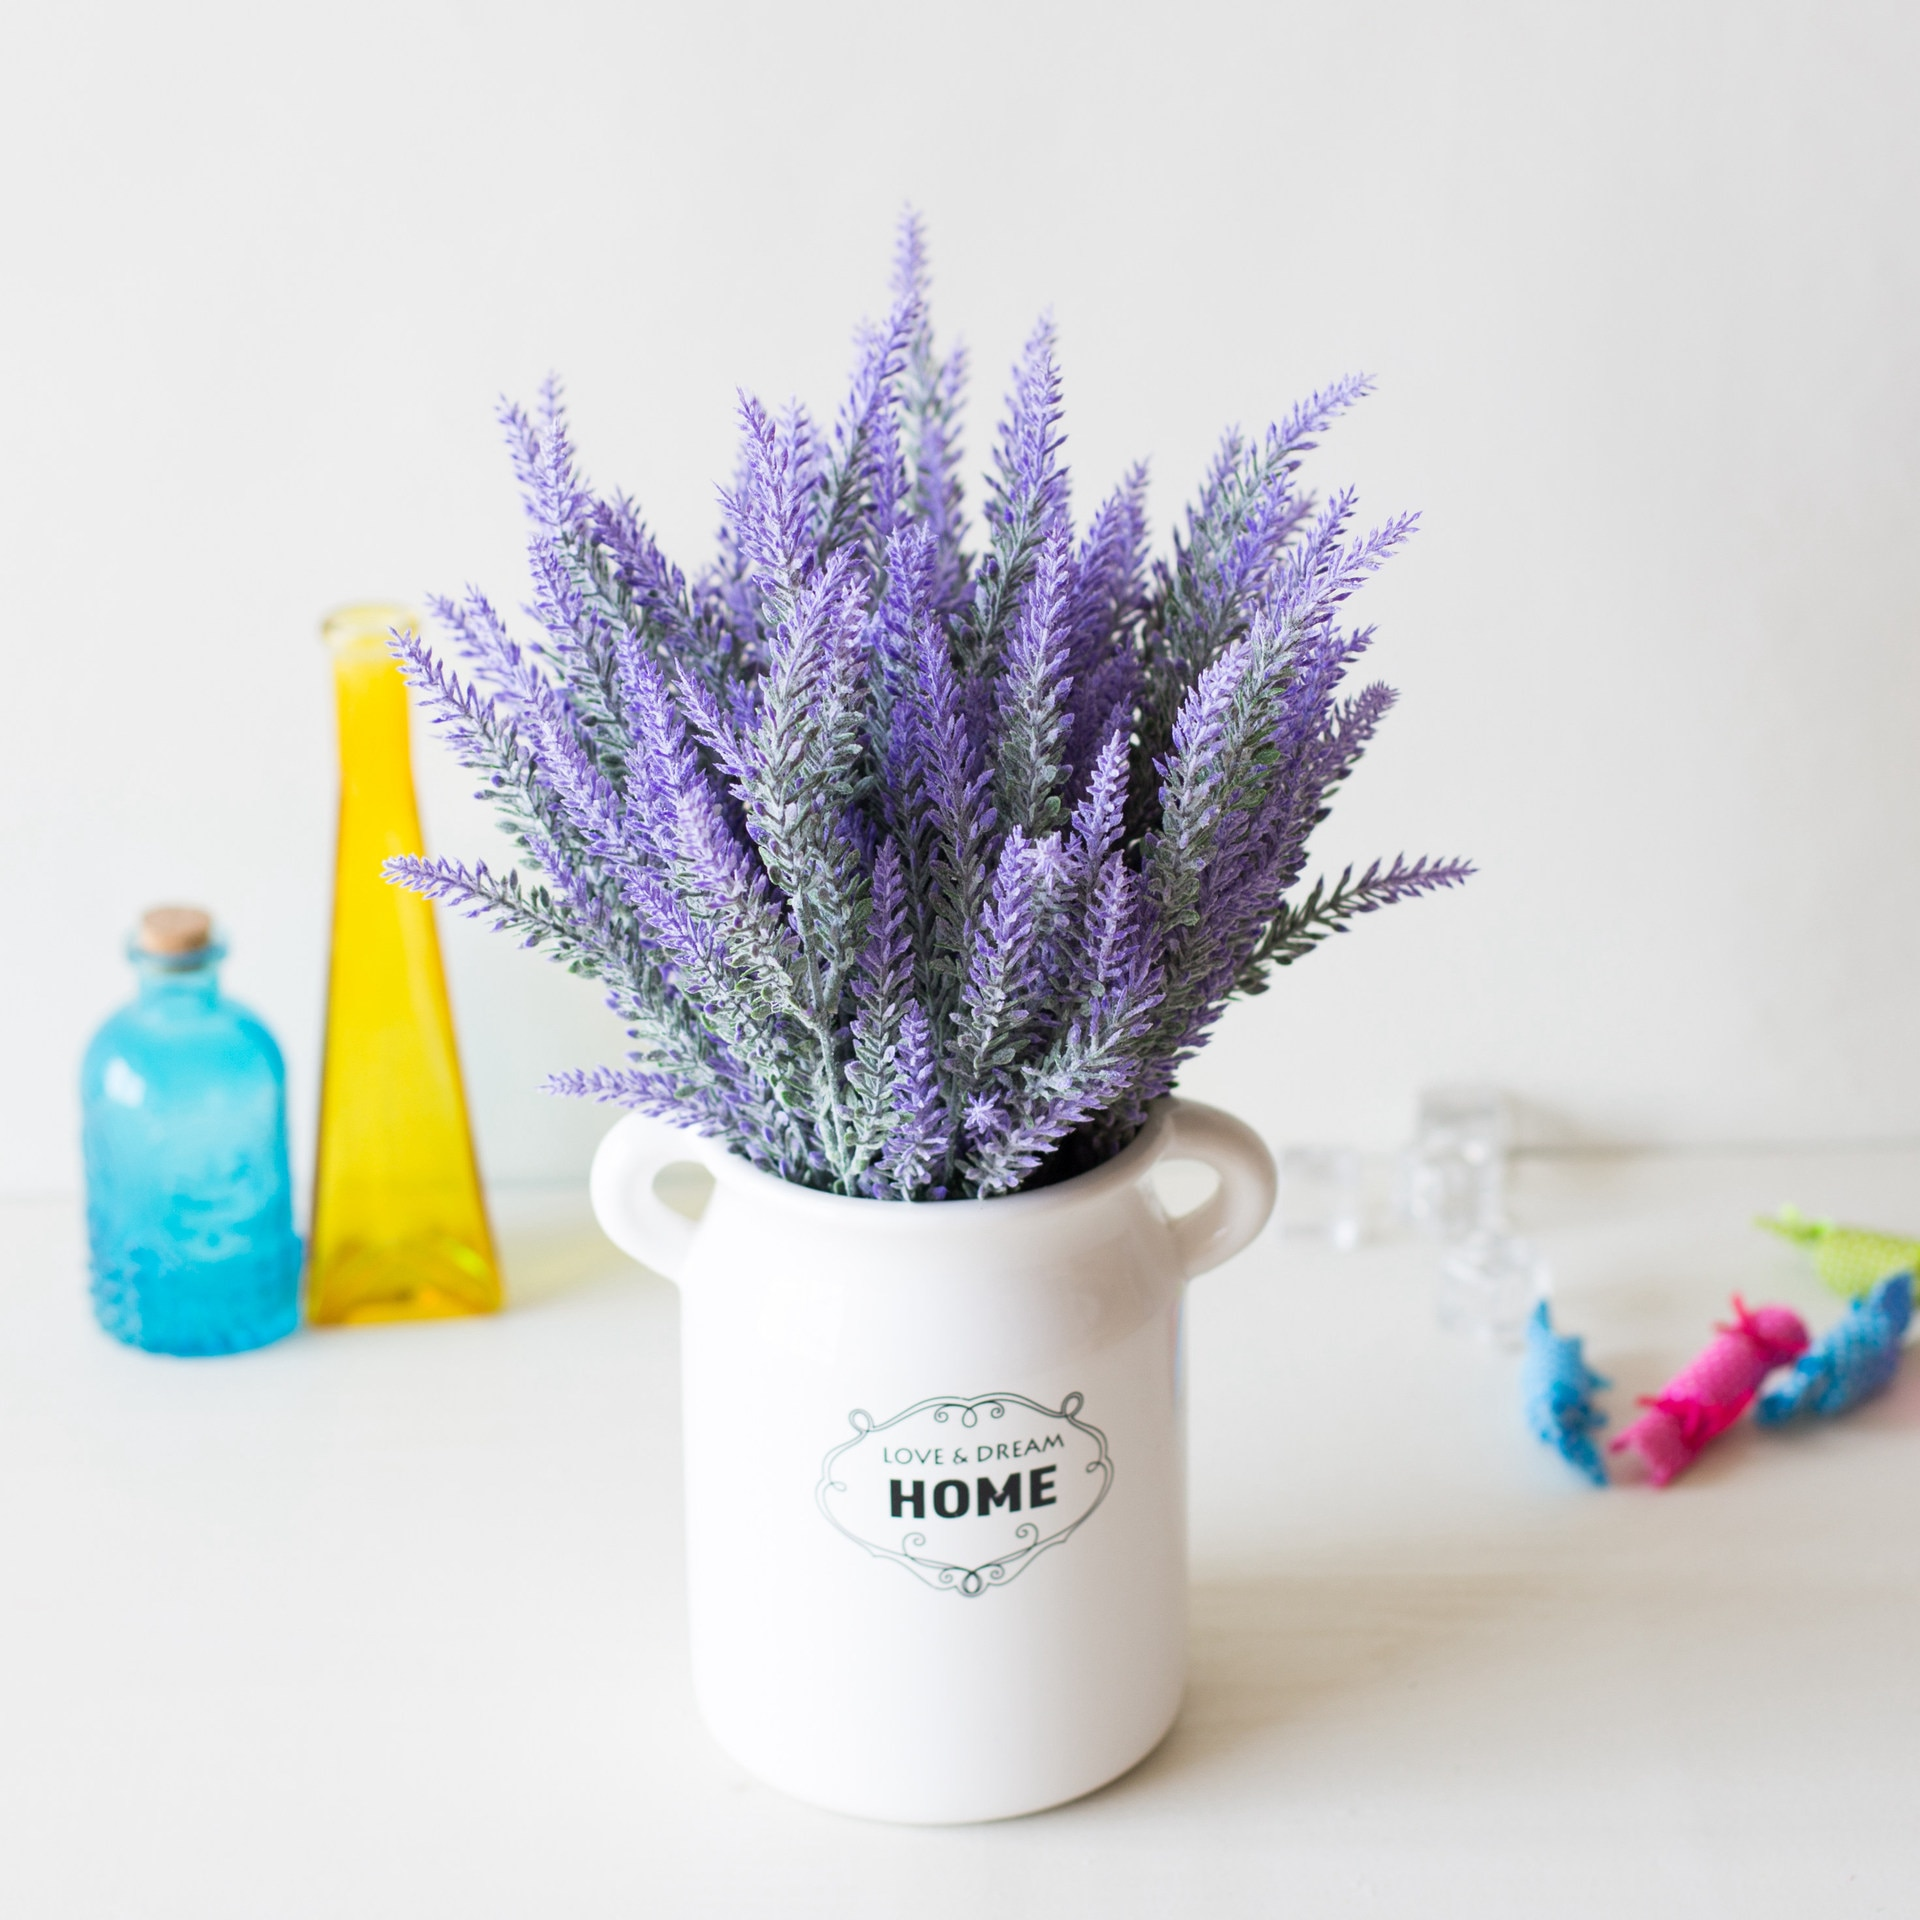 1 Bundle Romantic Provence Lavender Plastic Wedding Decorative Vase for Home Decor Artificial Flowers Grain Christmas Fake Plant